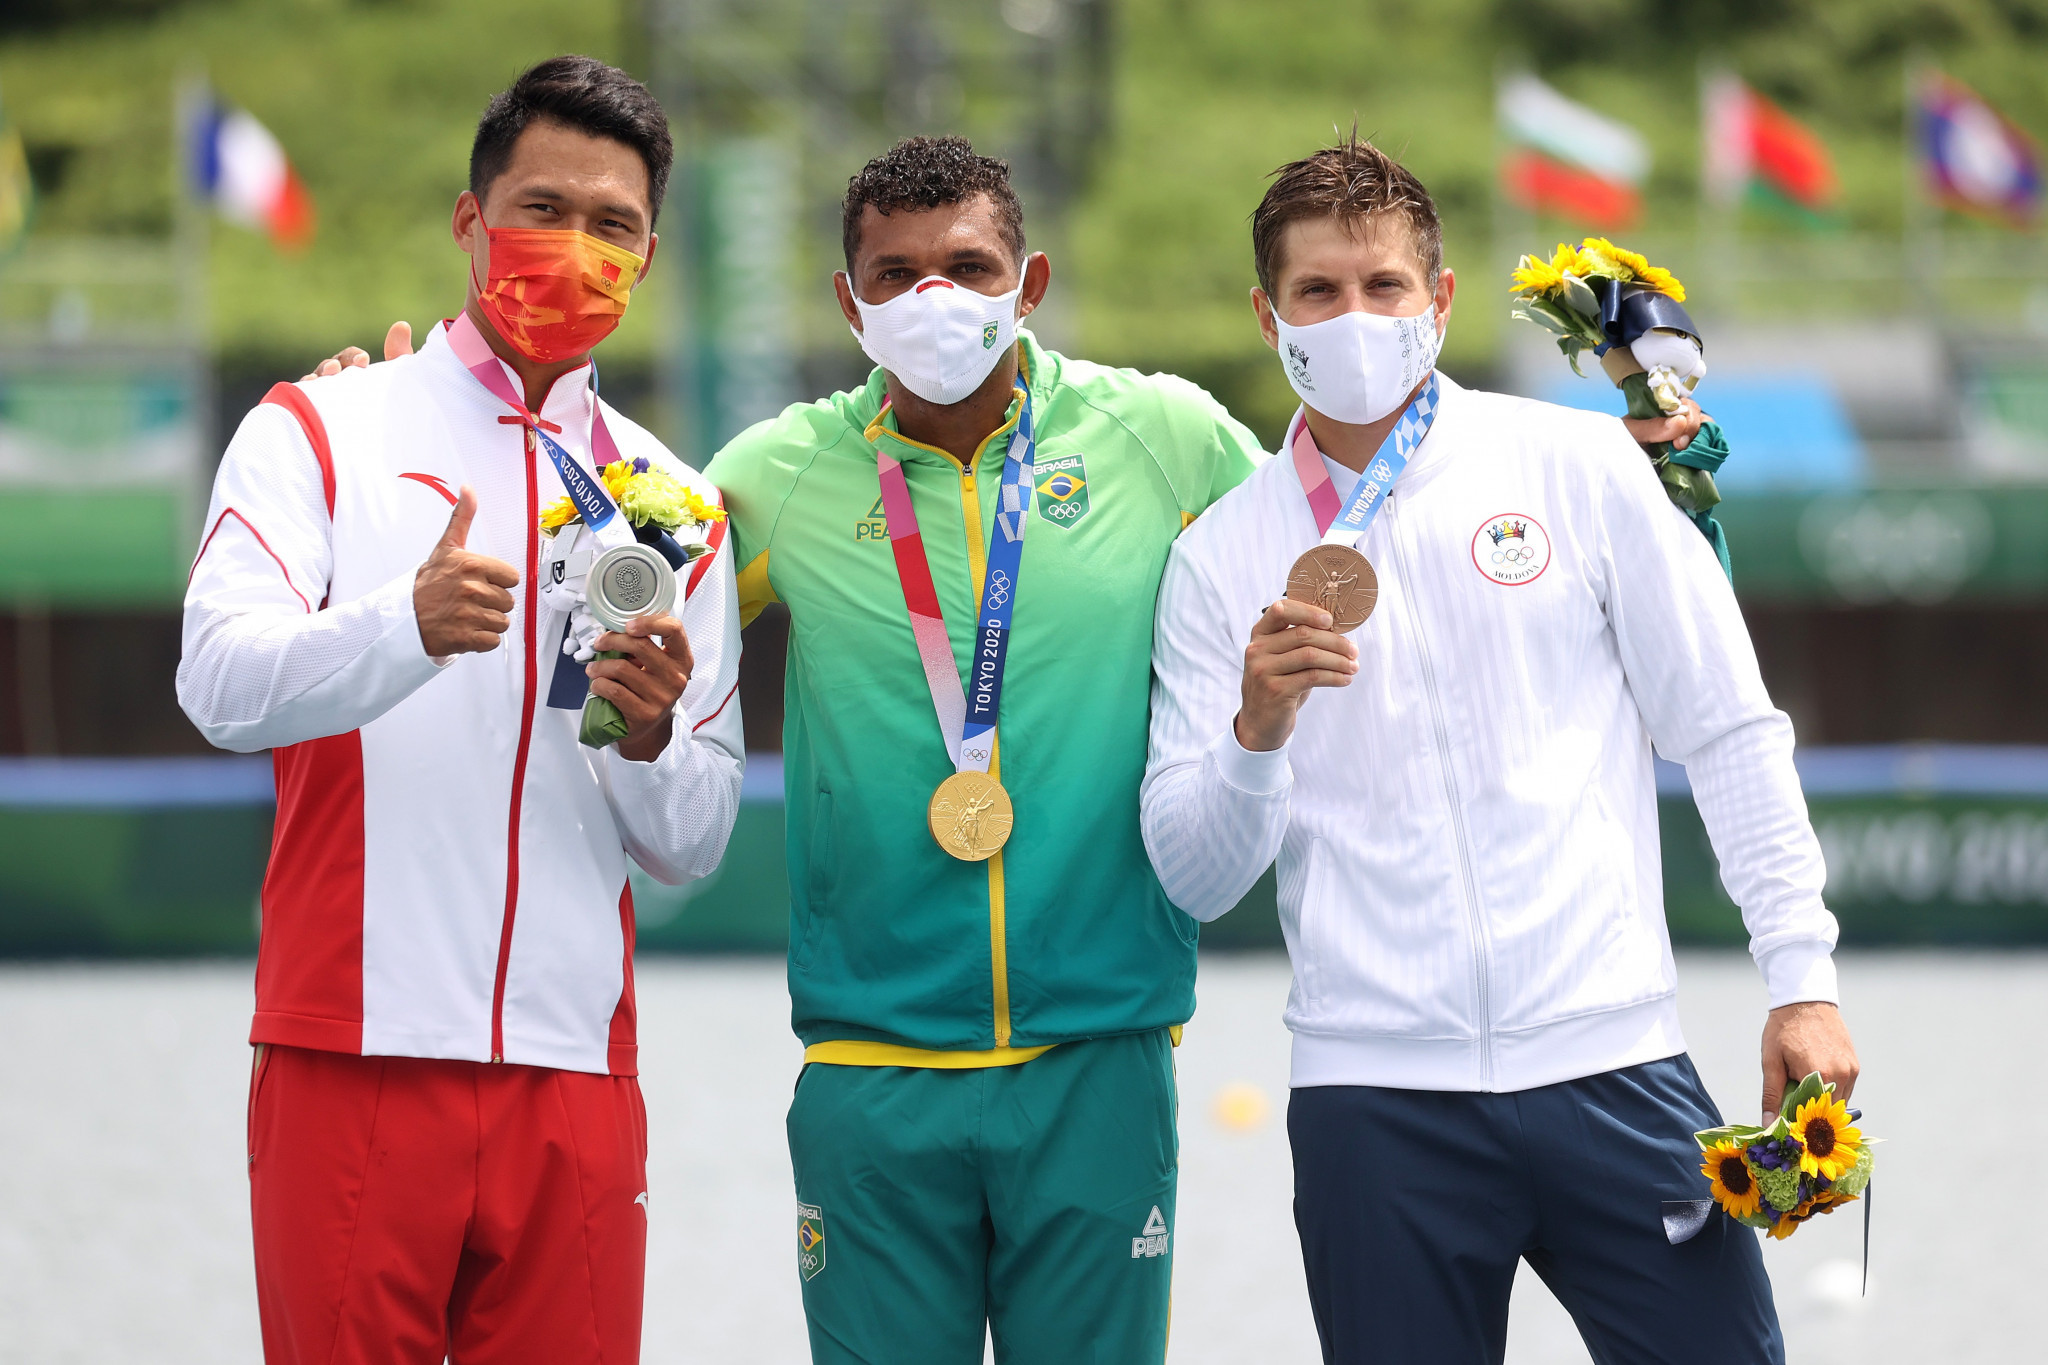 Serghei Tarnovschi, right, who was banned for four years in 2016 due to a positive doping test, stands on the podium alongside champion Isaquias Queiroz and Lui Hao ©Getty Images